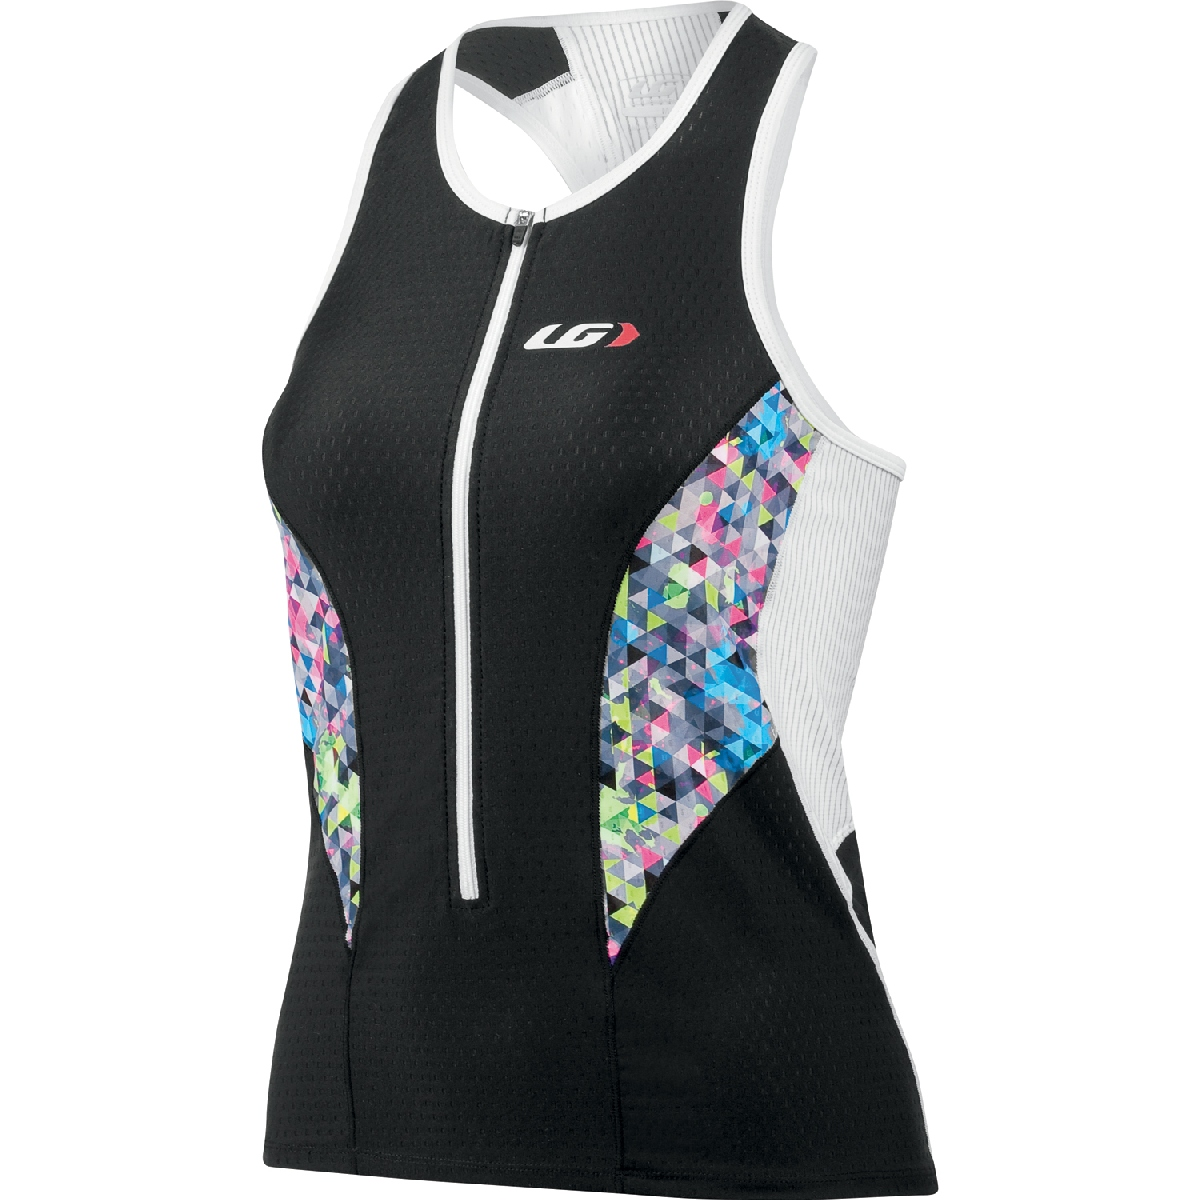 Louis Garneau Pro Triathlon Top Women's Size L Black Multi U.S.A. & Canada